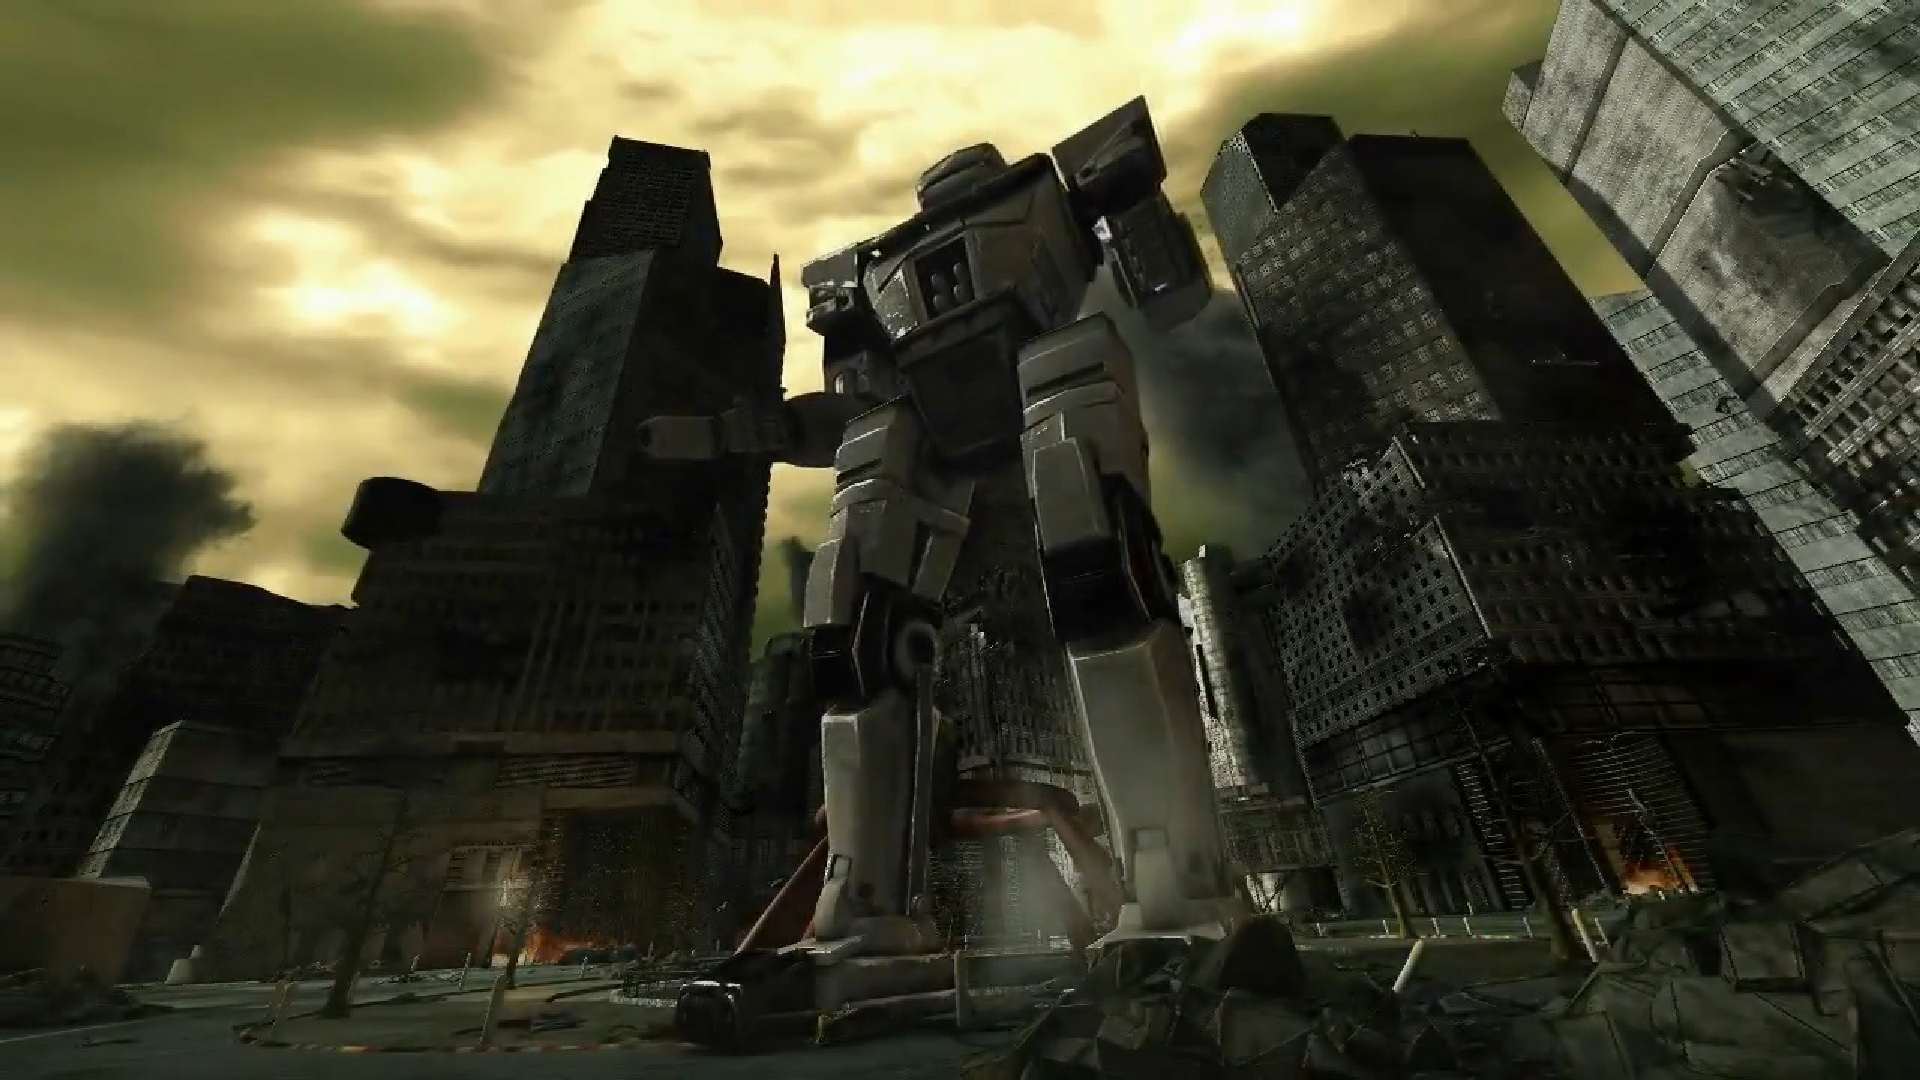 Personae Studios reboots MechWarrior for iOS in the robotic shape of MechWarrior: Tactical Command - launching on App Store in 2012